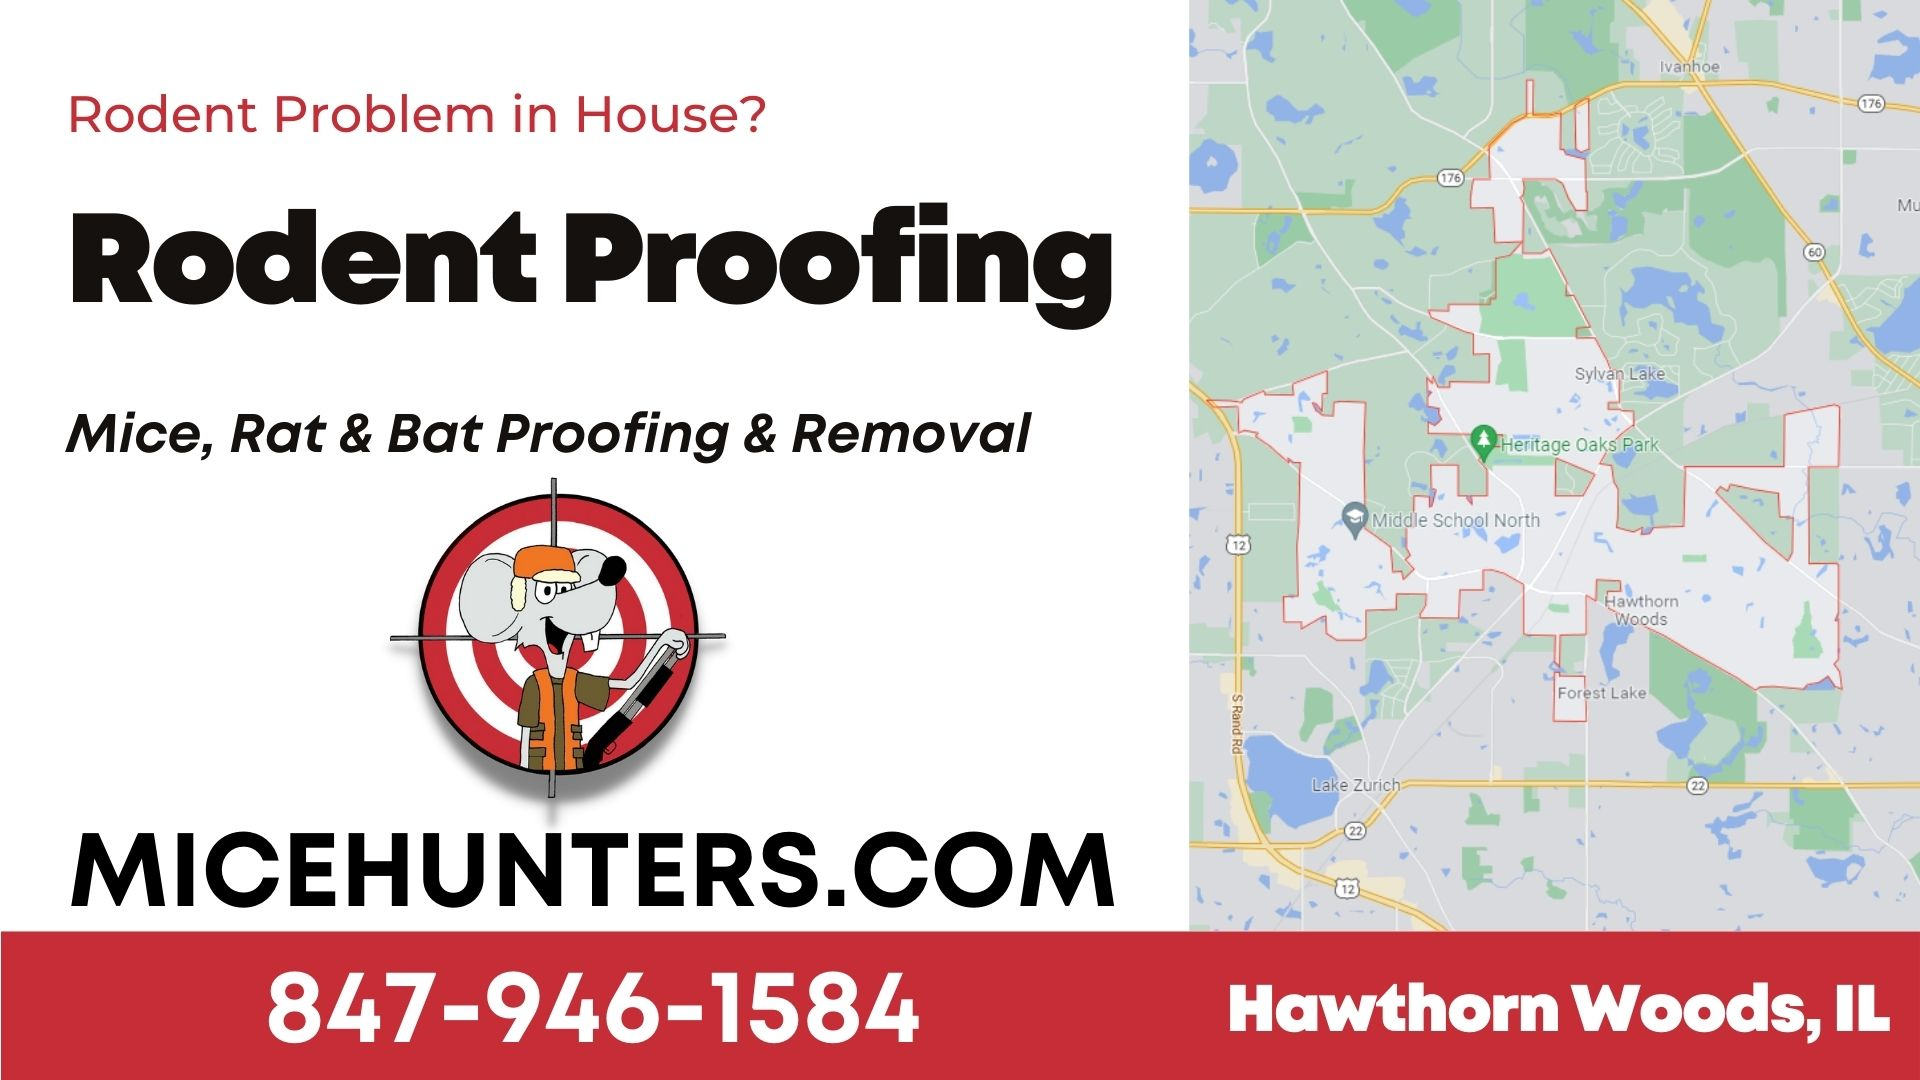 Hawthorn Woods Rodent and Mice Proofing Exterminator